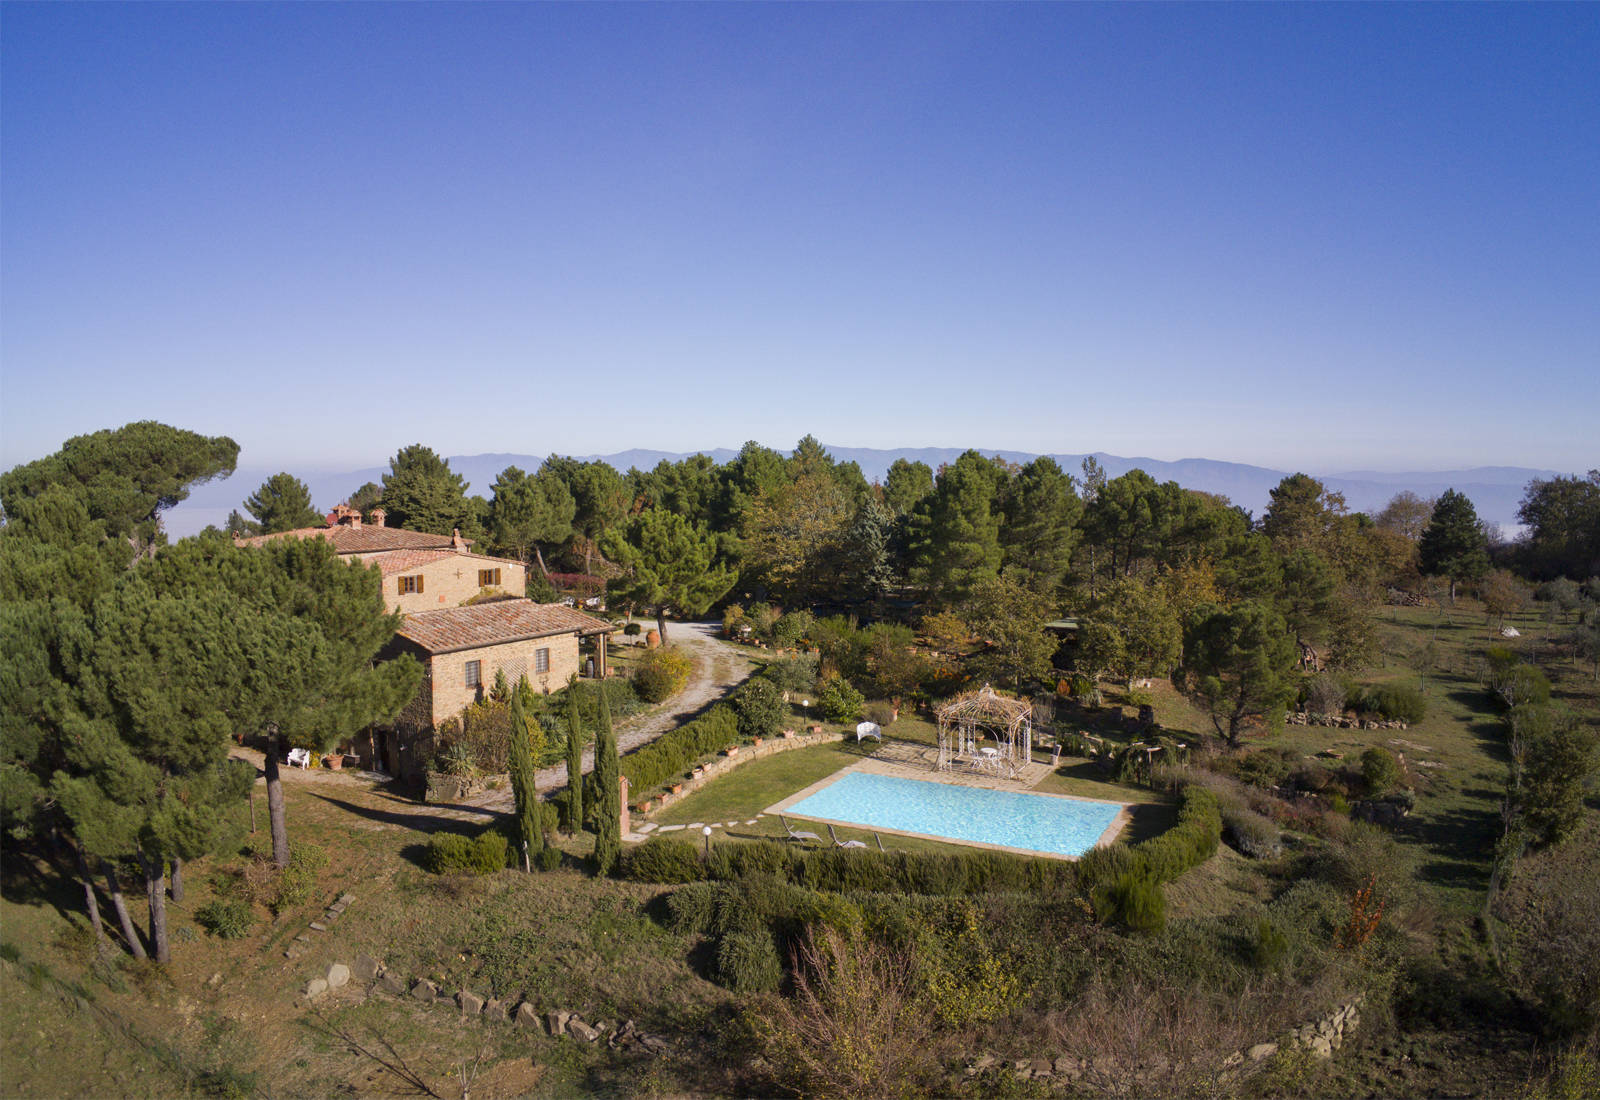 prestigious_real_estate_in_italy?id=2231